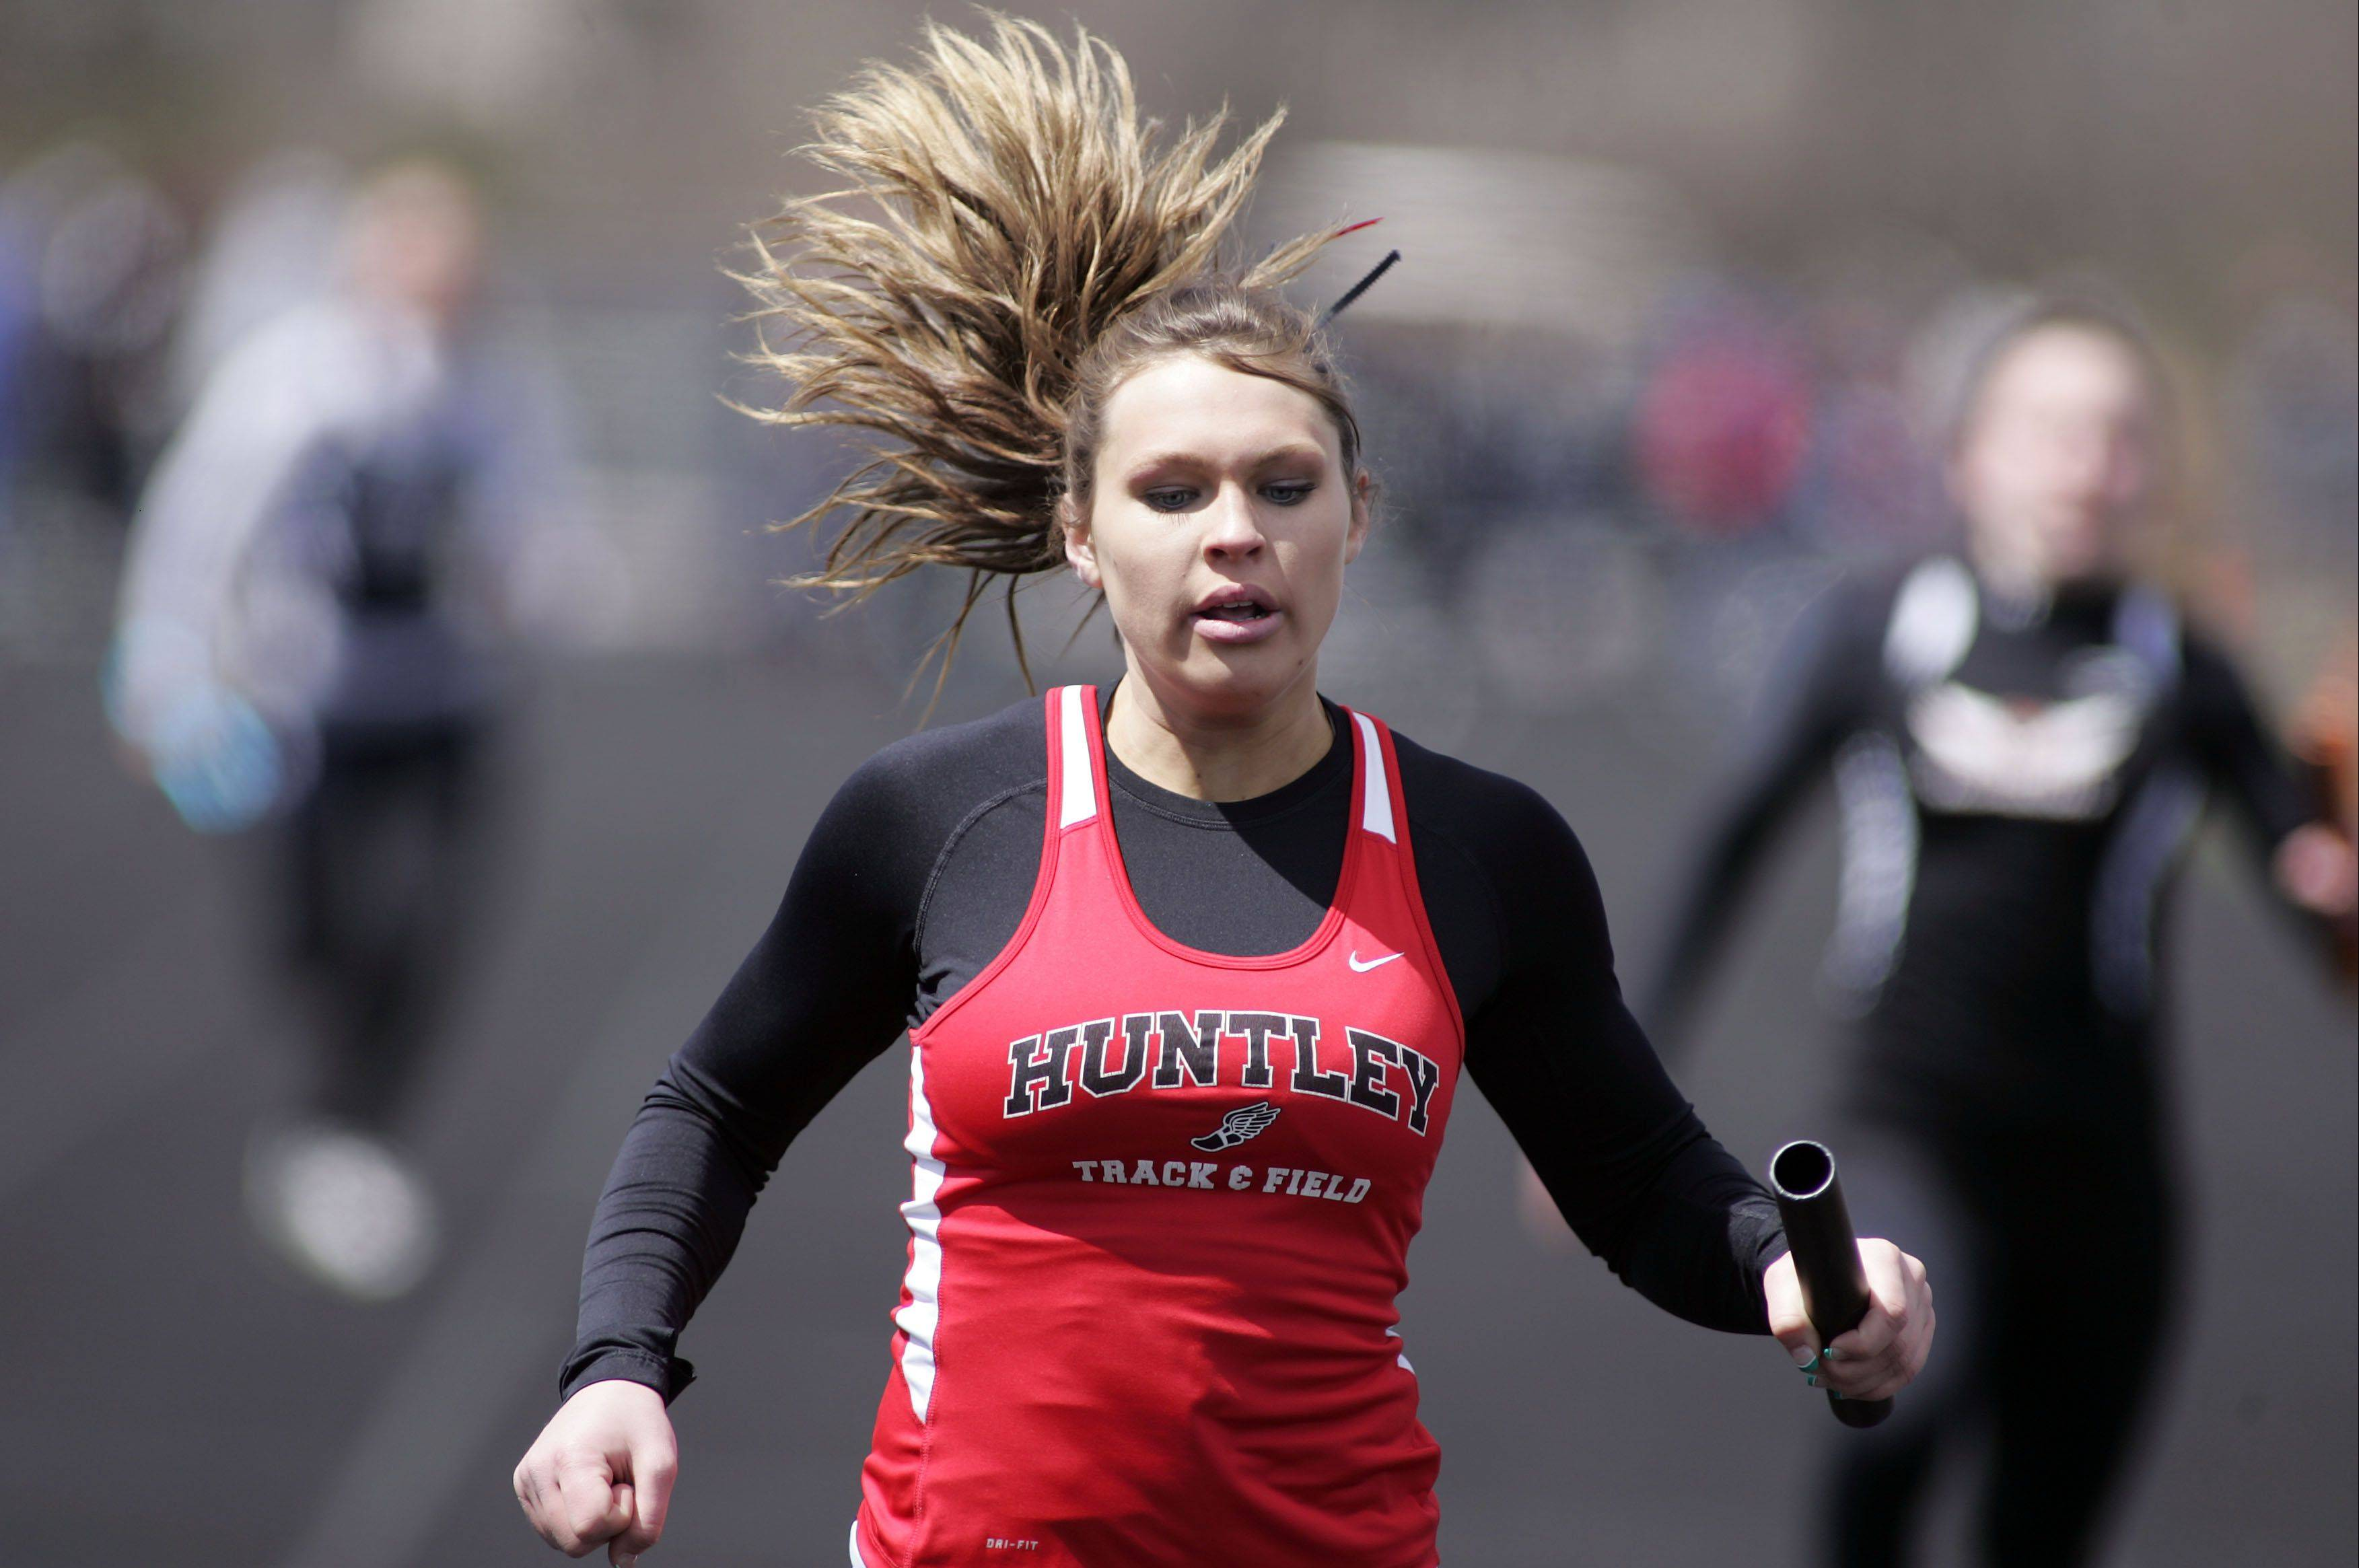 Taylor Schau of Huntley finishes first in the 400 relay during the McHenry County boys and girls track meet Saturday at Cary-Grove High School in Cary.